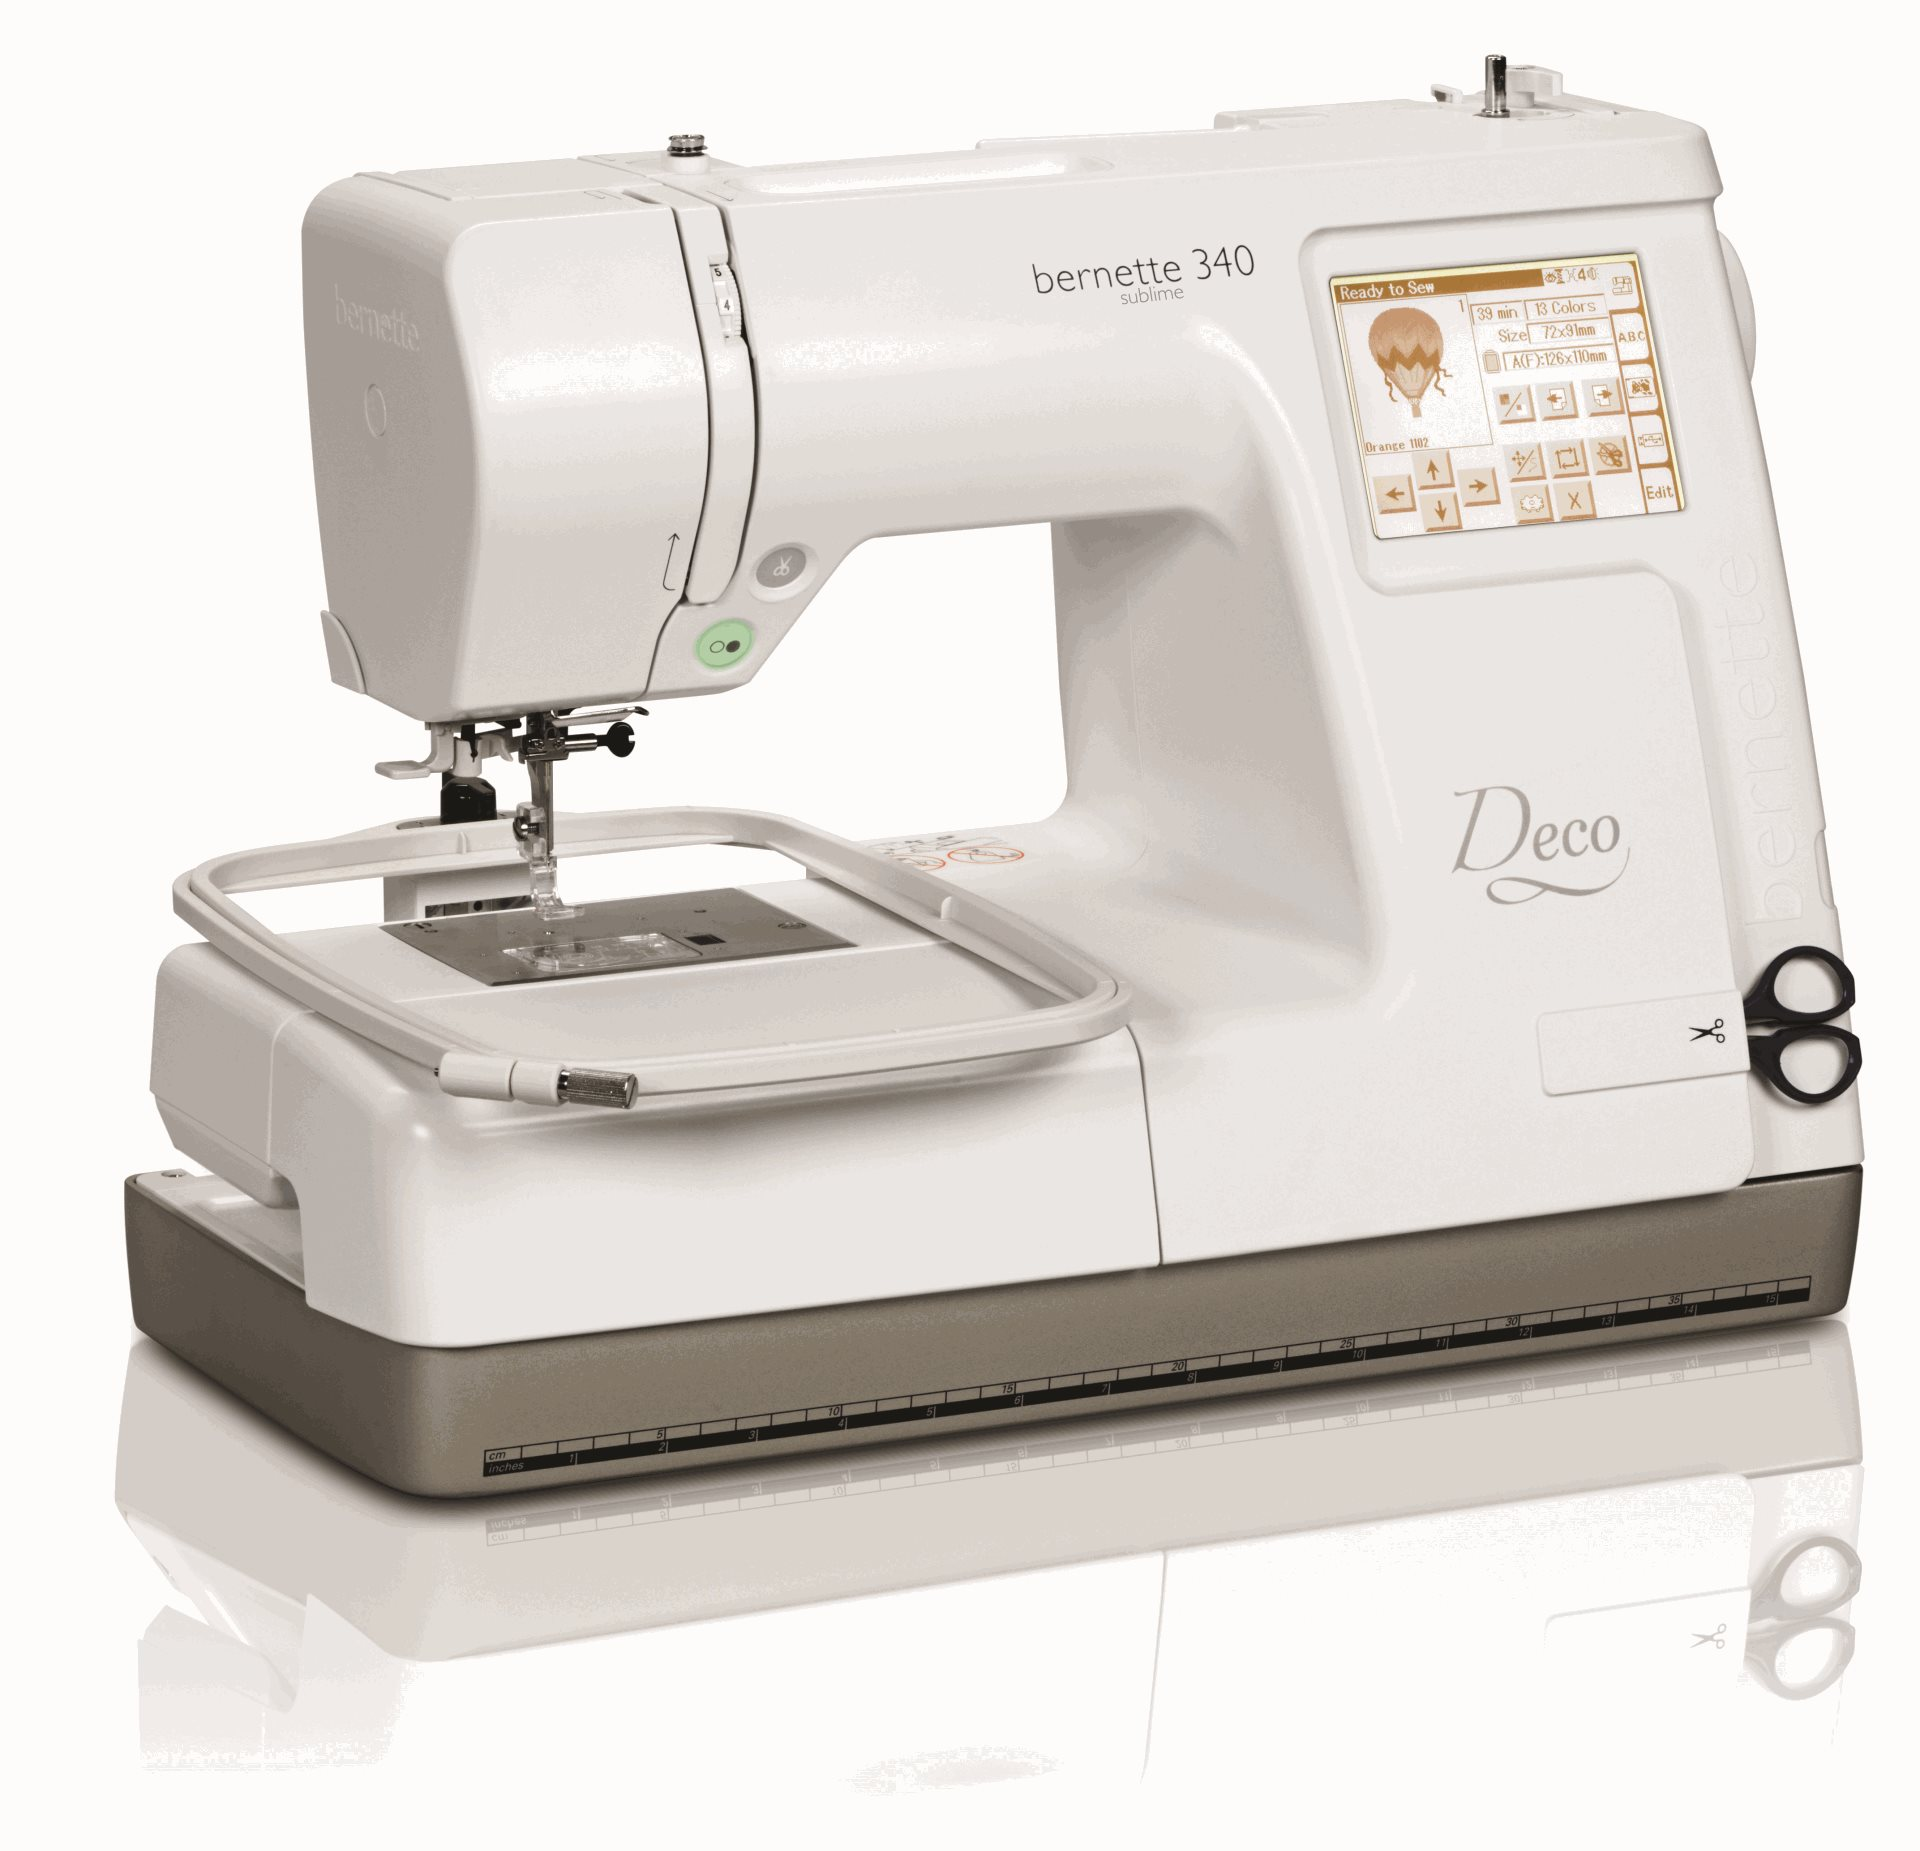 bernina deco embroidery machine